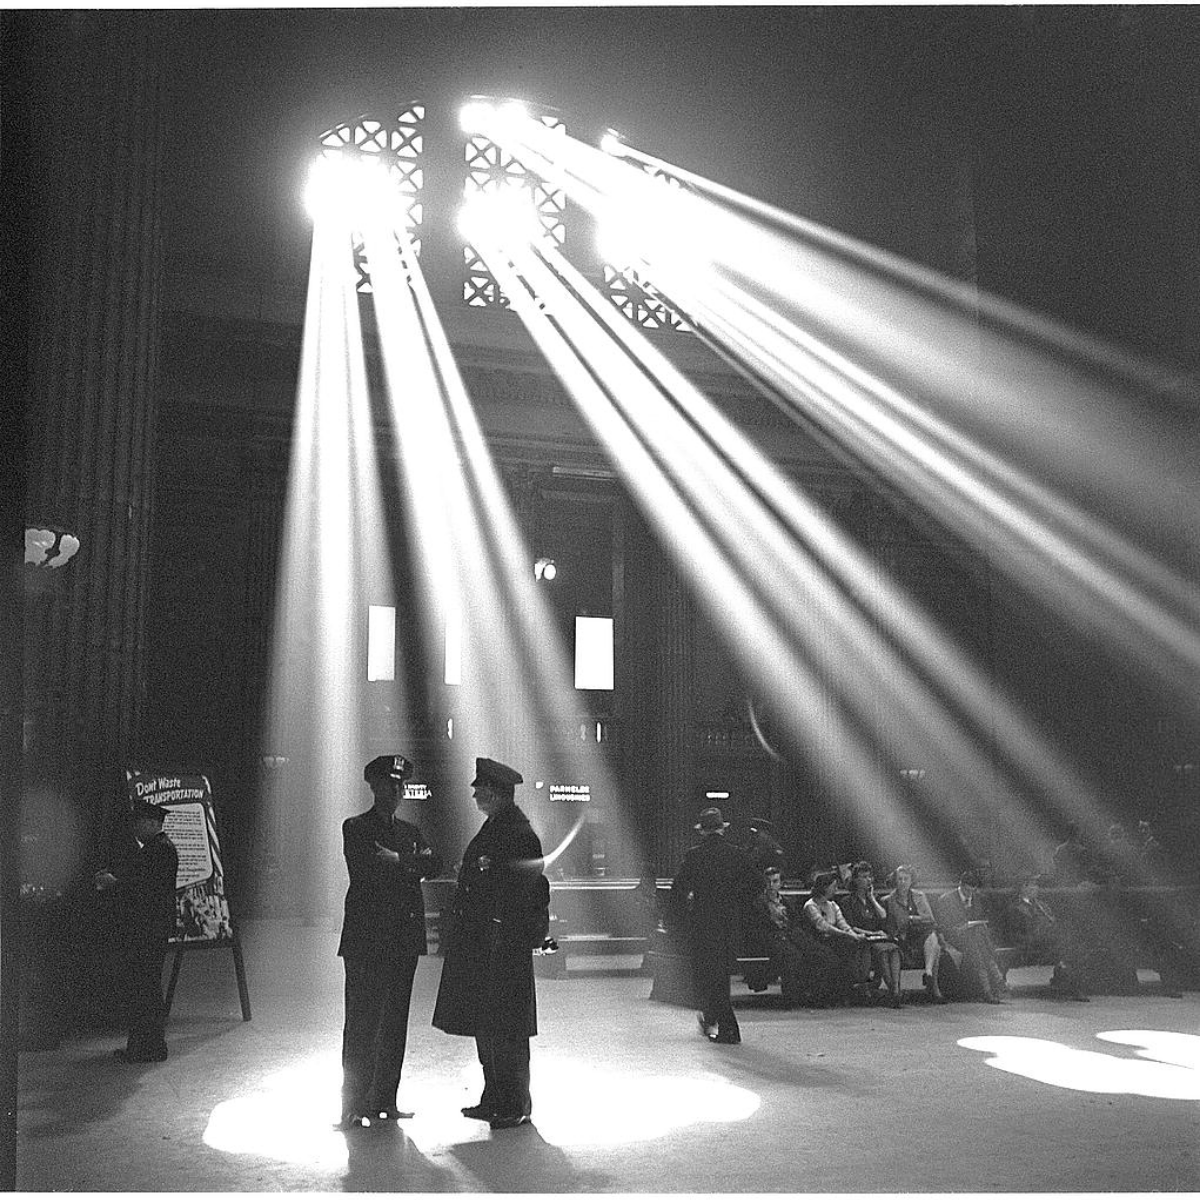 In the waiting room of Chicago's Union Station in January 1943. (Photo by  Jack Delano/The Library of Congress [No restrictions], via Wikimedia Commons).